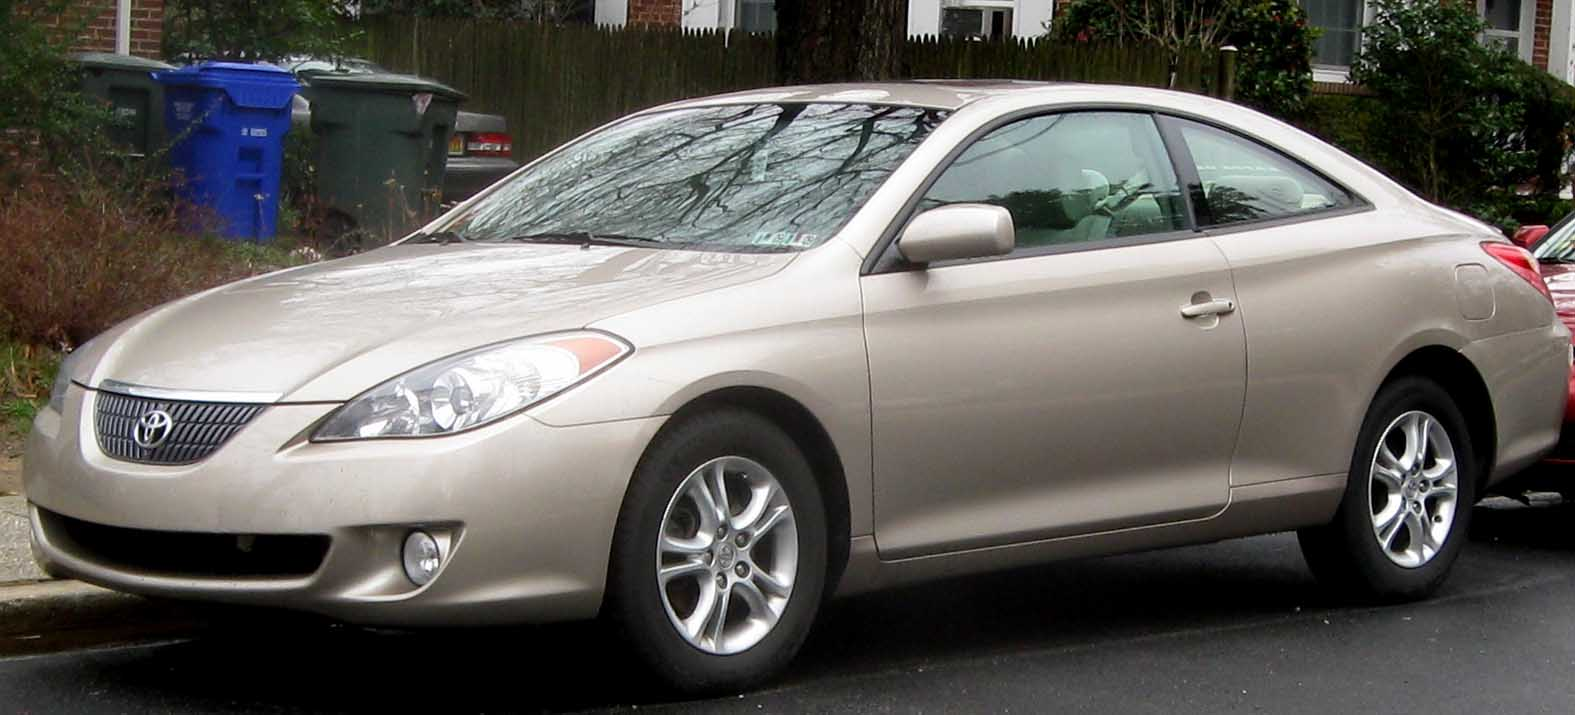 Toyota Solara 2012 photo - 2